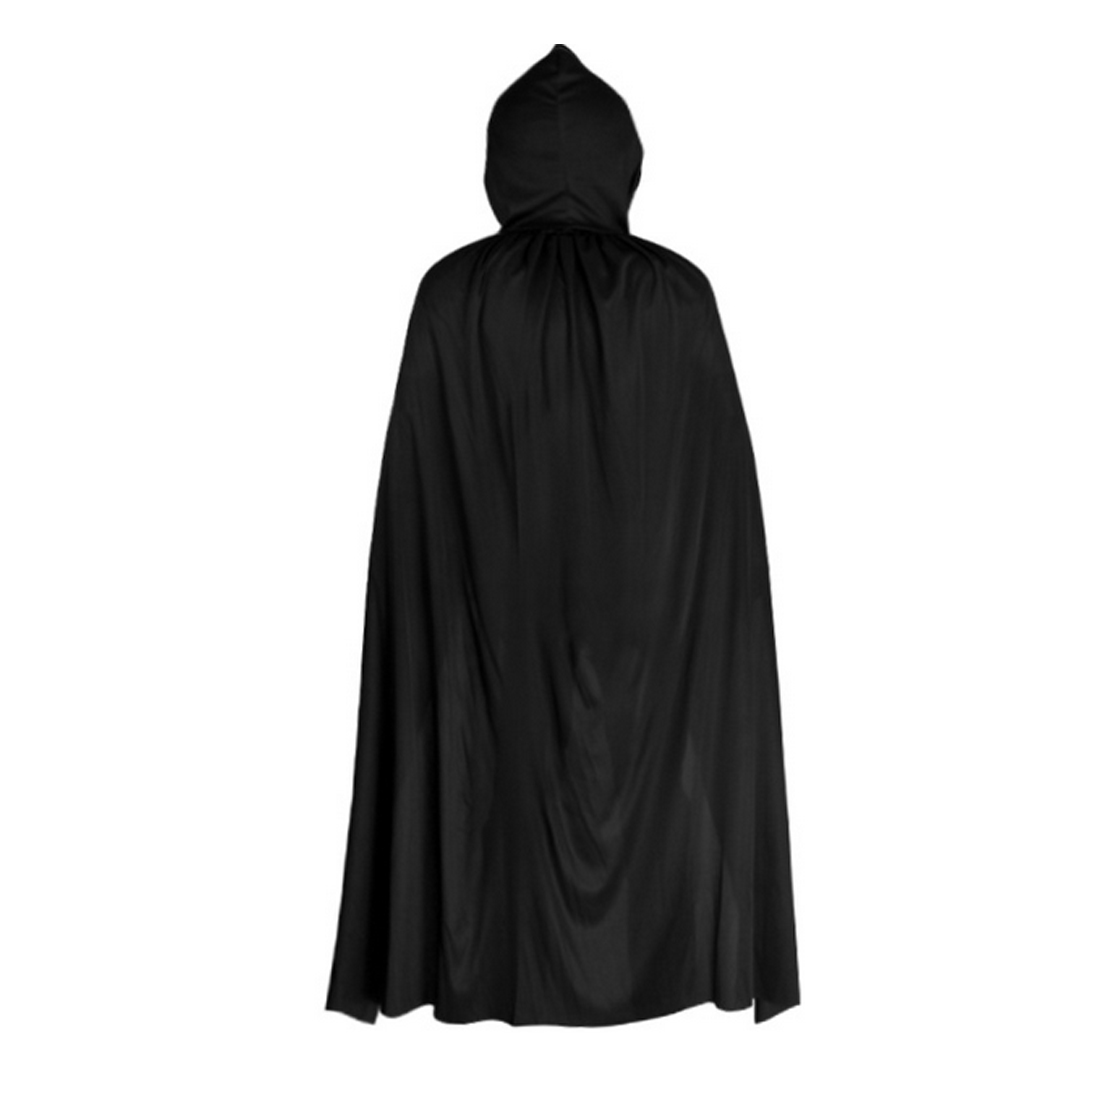 877915d5d0 Details about Halloween Long Vampire Hooded Cloak Witch Robe Cape Party Cosplay  Costumes Coats